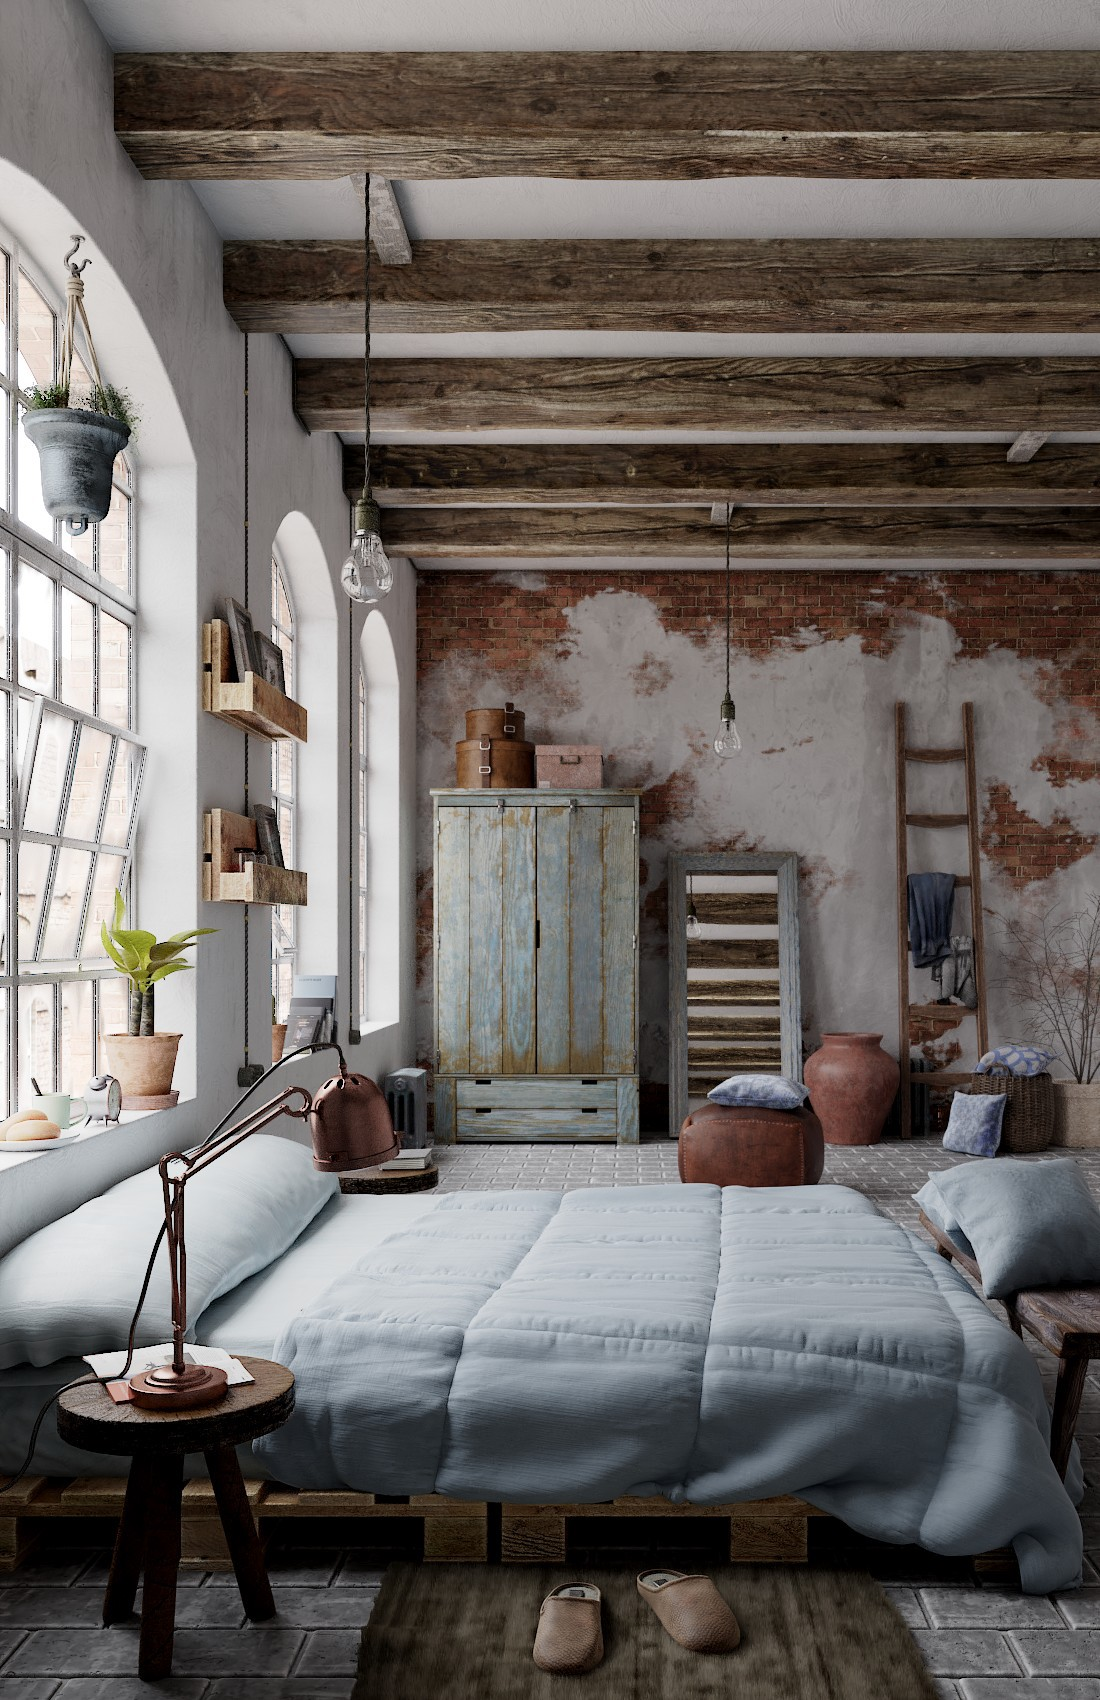 Rustic Bedrooms: Guide And Inspiration For Designing Them images 10